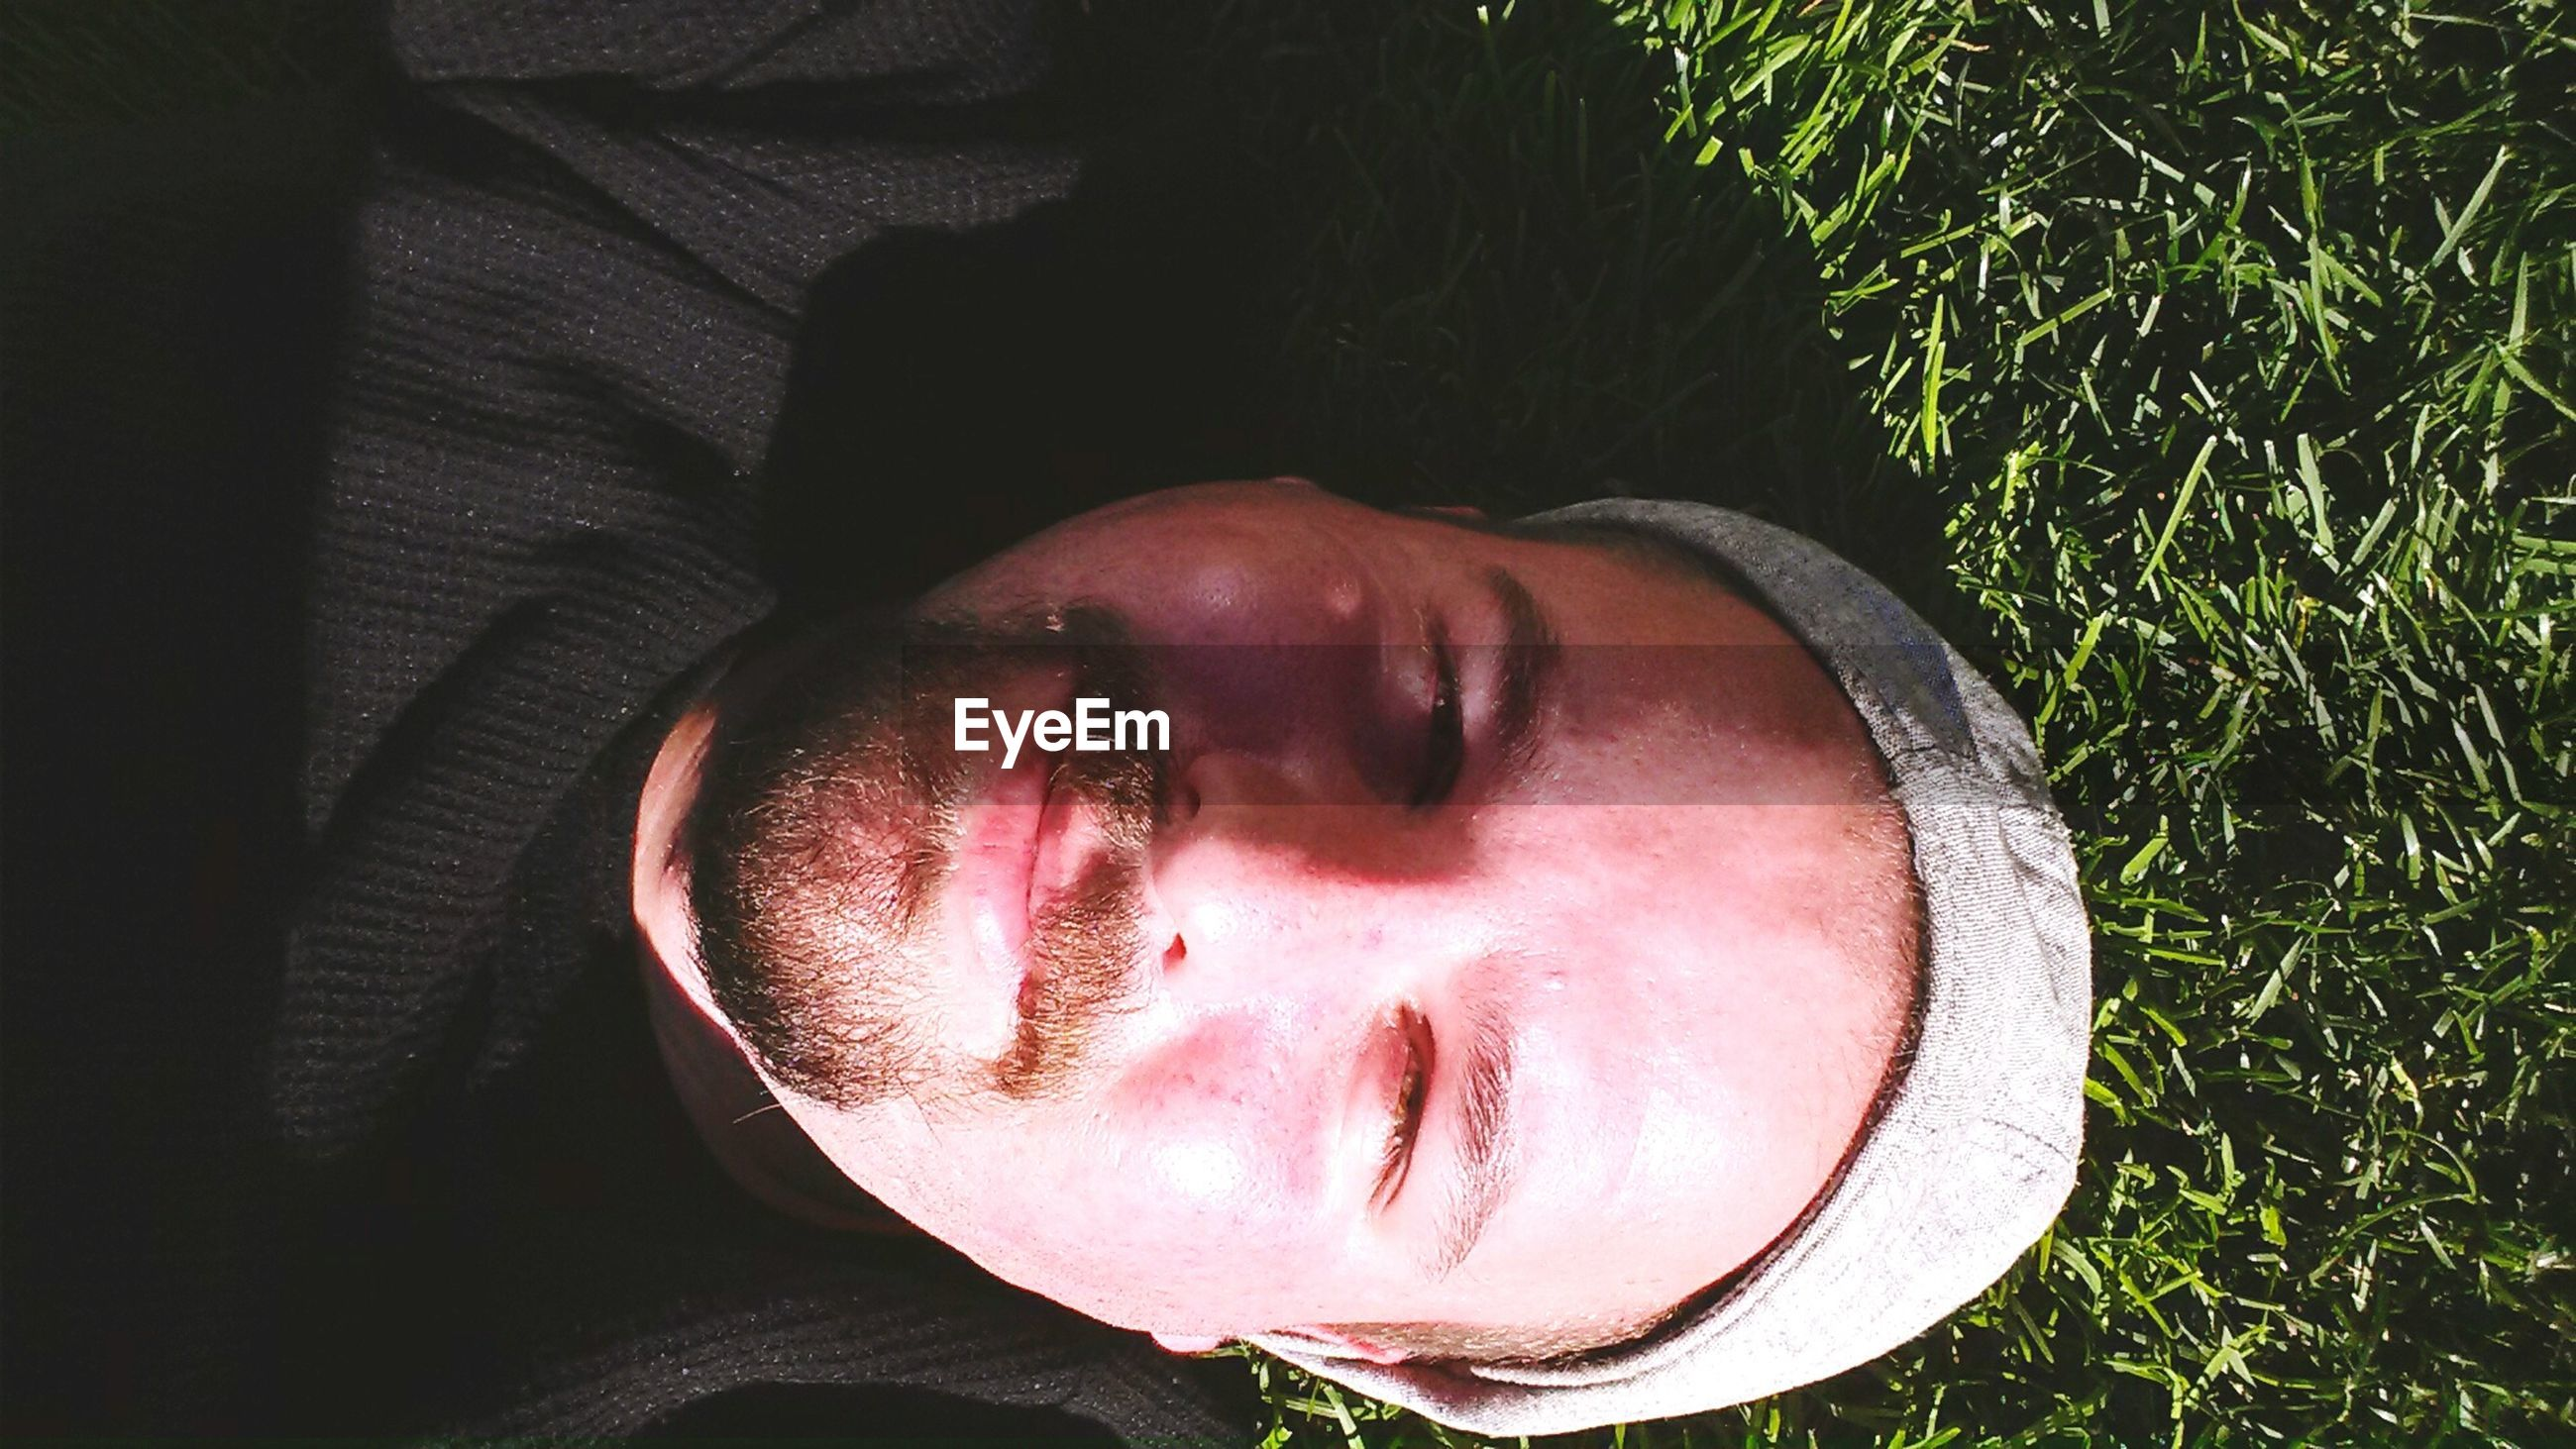 Close-up high angle view of young man lying on grass